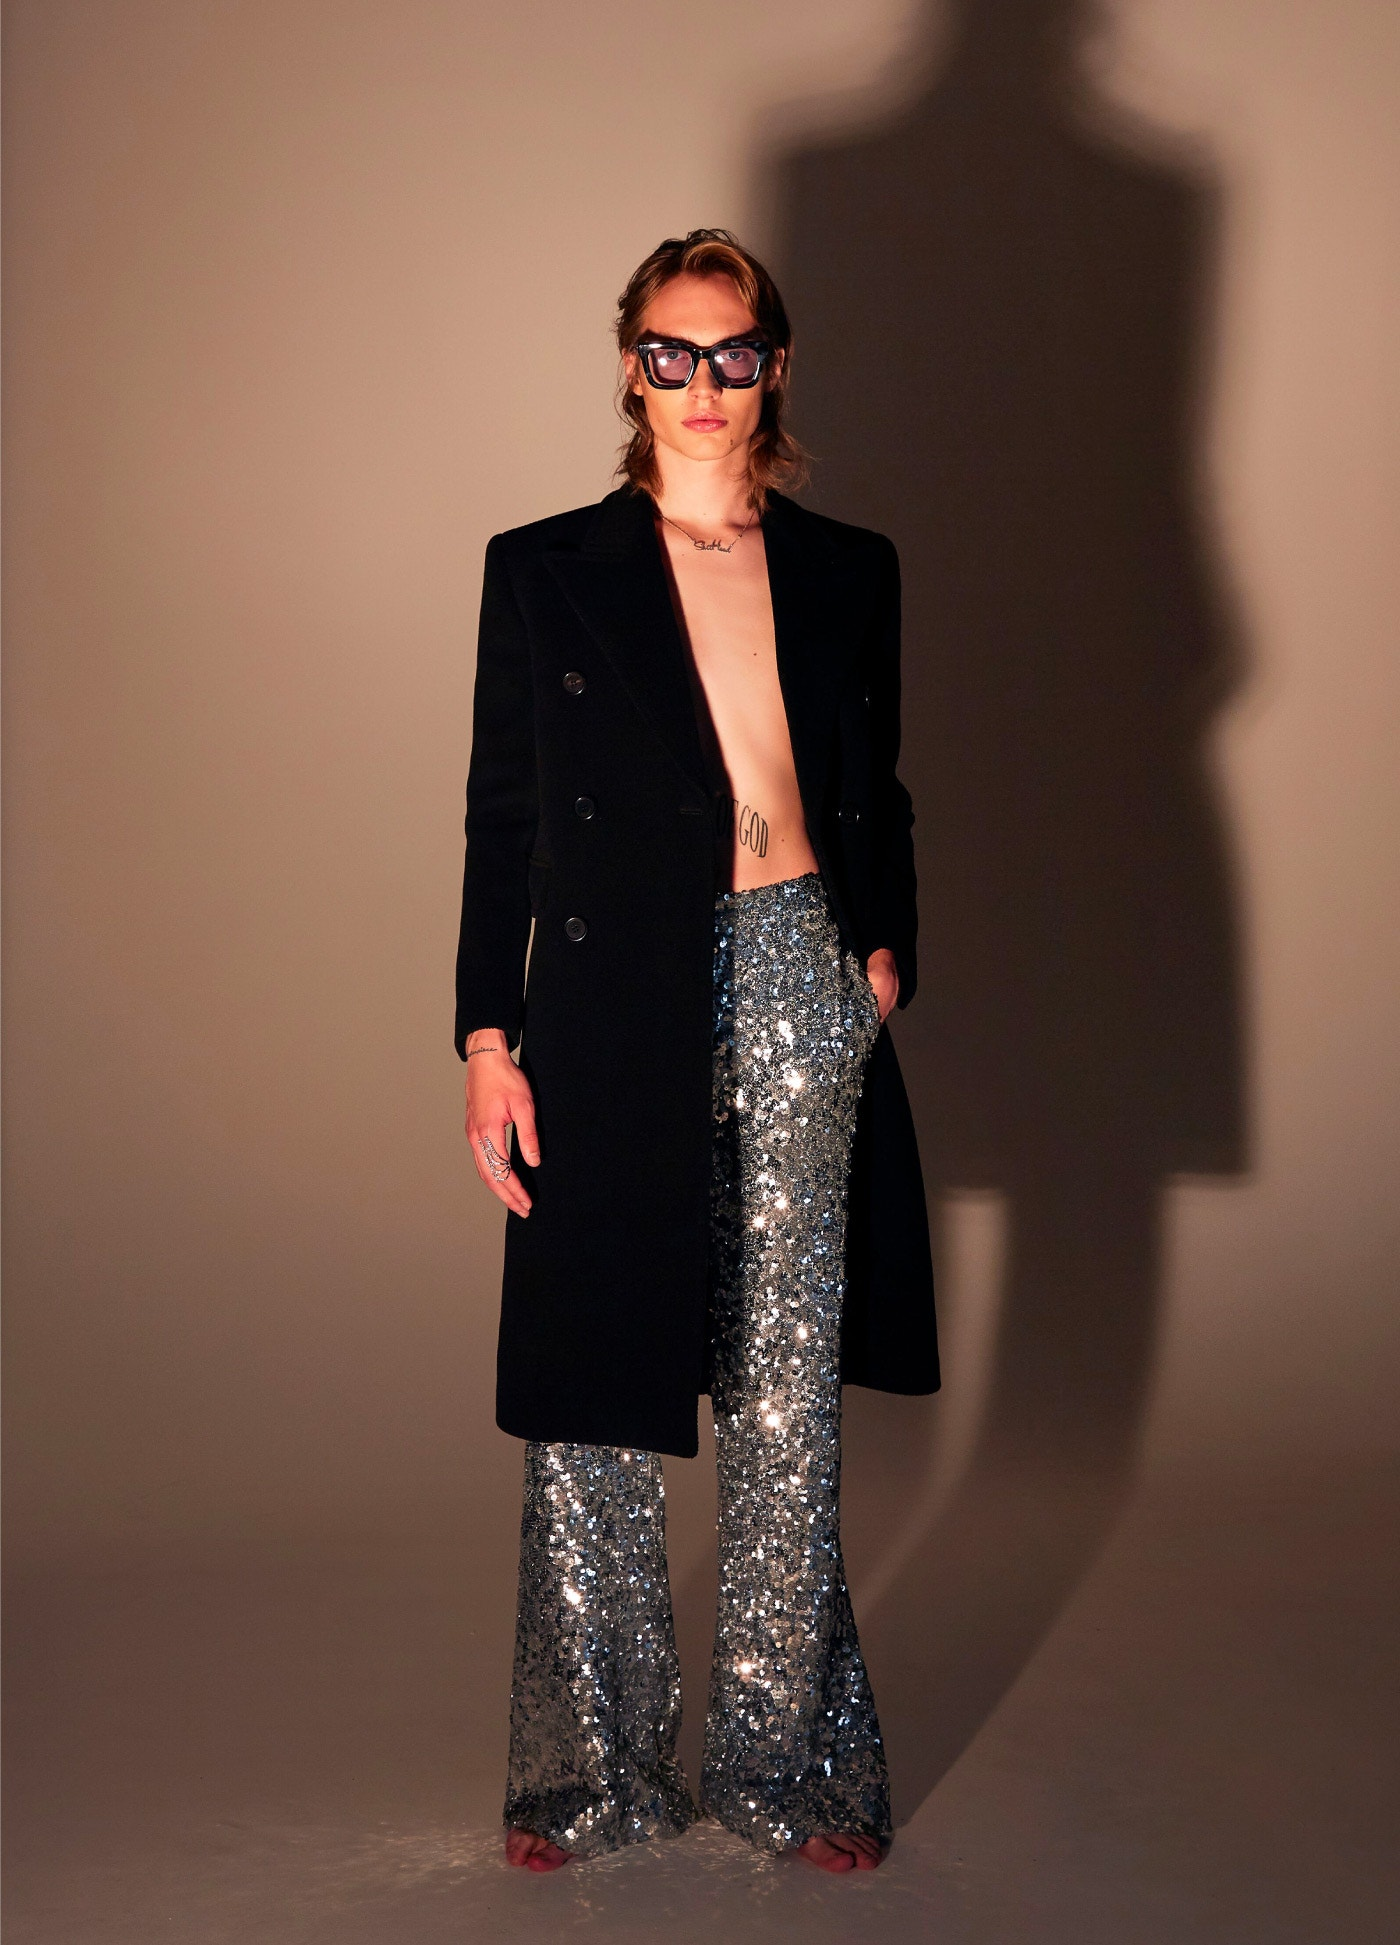 SAINT LAURENT Double-Breasted Overcoat – HALPERN Sequin Trousers – SACAI Sunglasses – YEPREM Ring